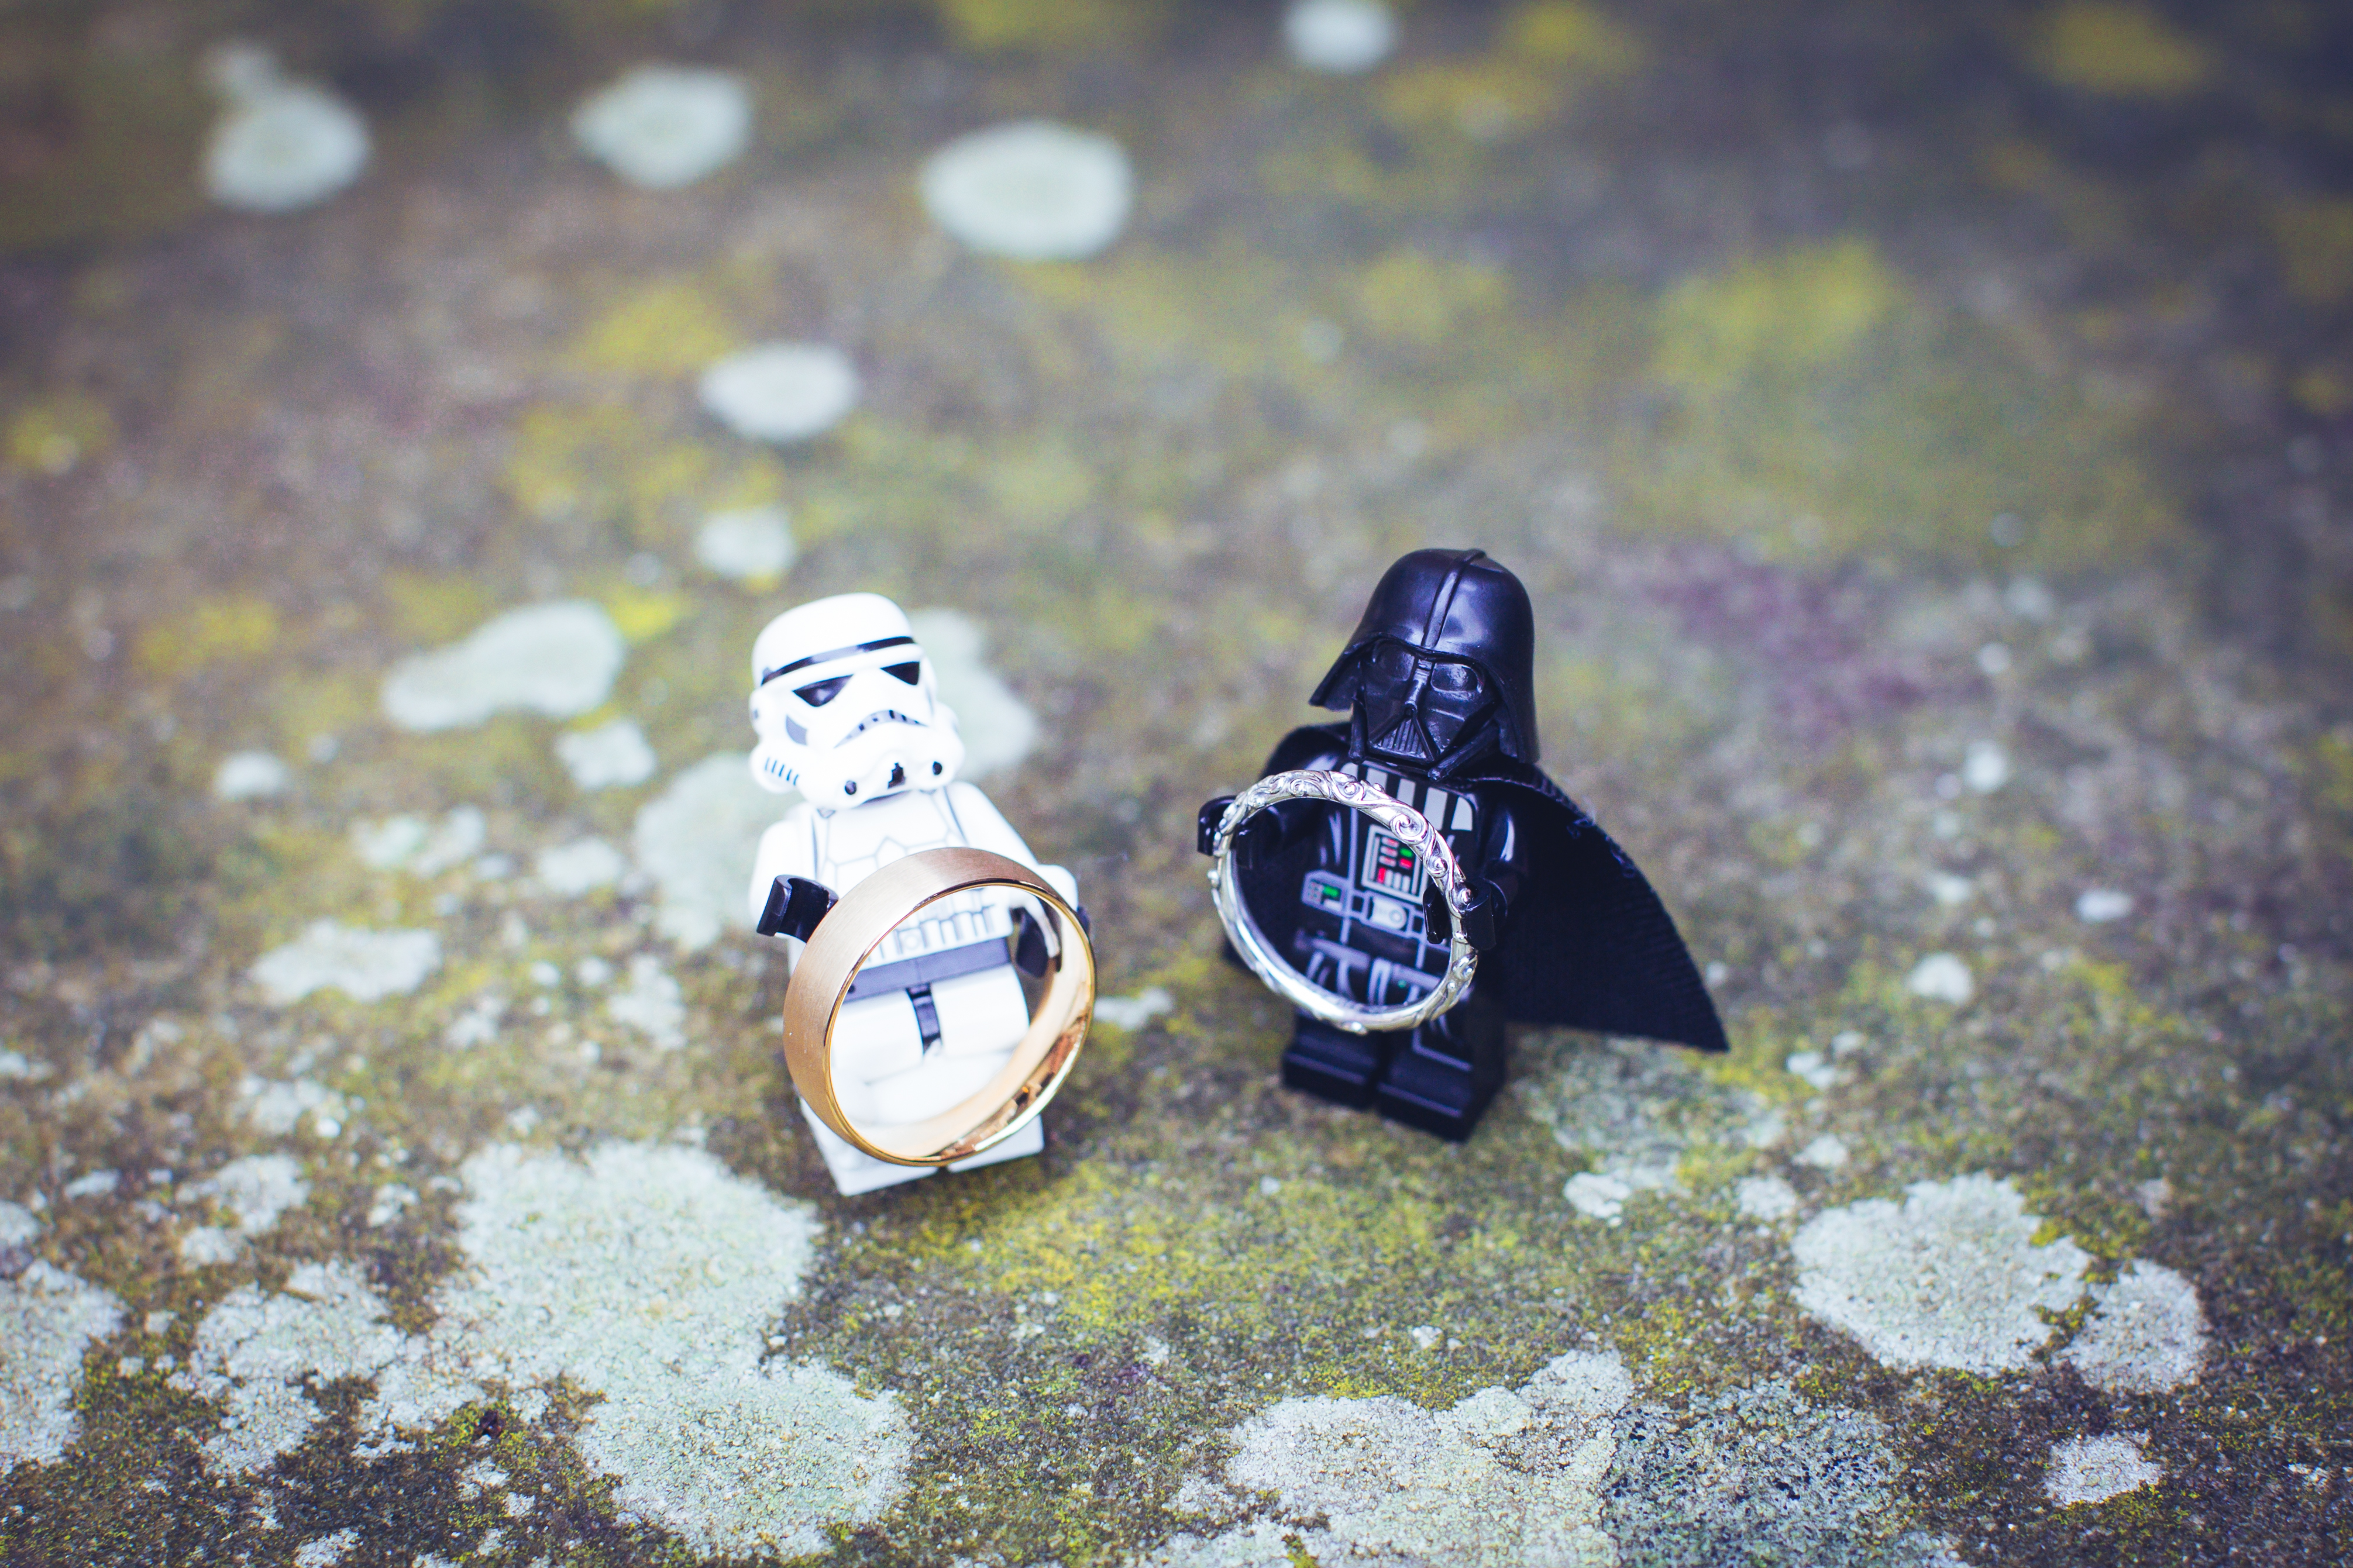 haden hill house wedding photography rings star wars lego men